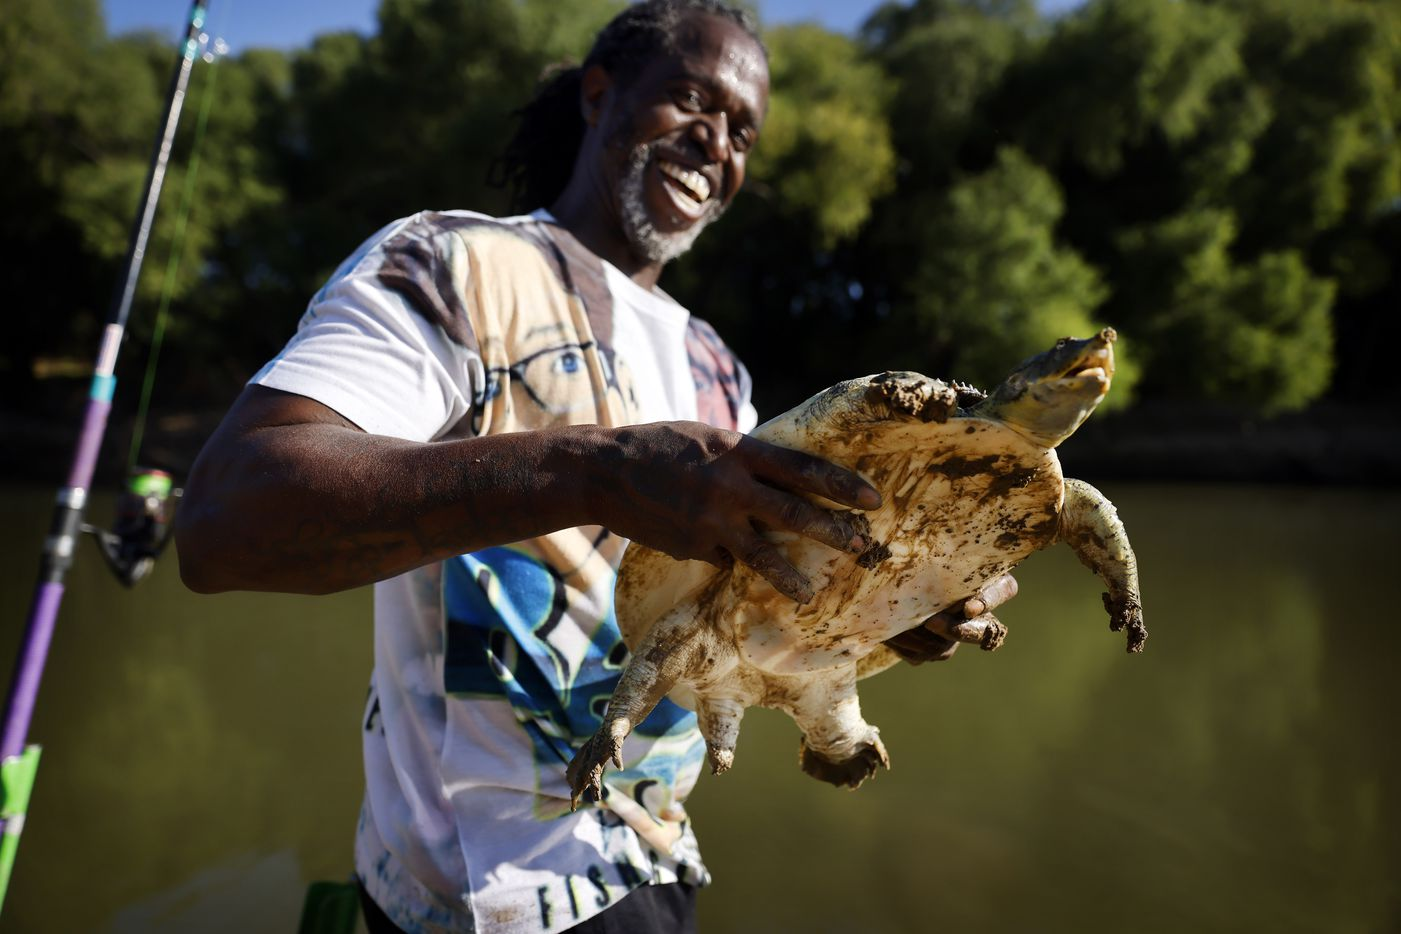 Odell Allen laughs after he reeled in a softshell turtle instead of an alligator gar on the Trinity River near the Westmoreland bridge, Monday, August 30, 2021.  He released it back to the river like he does the alligator gar he catches.  (Tom Fox/The Dallas Morning News)